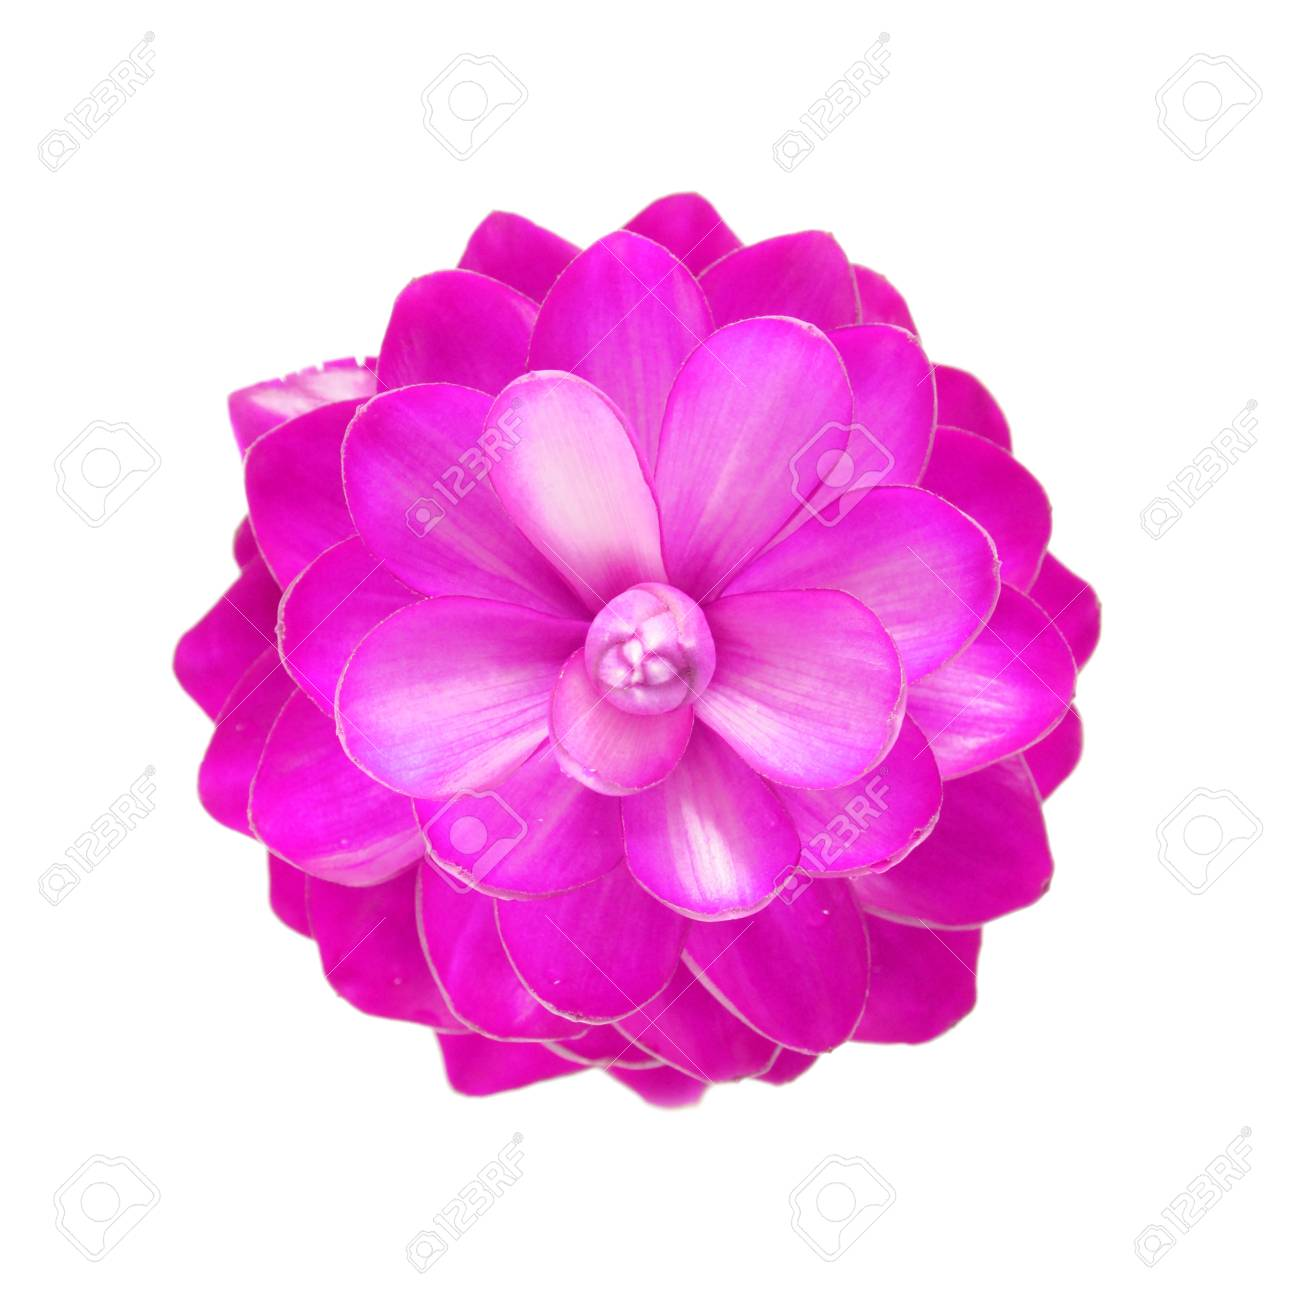 Pink Ginger Flower Stock Photo Picture And Royalty Free Image